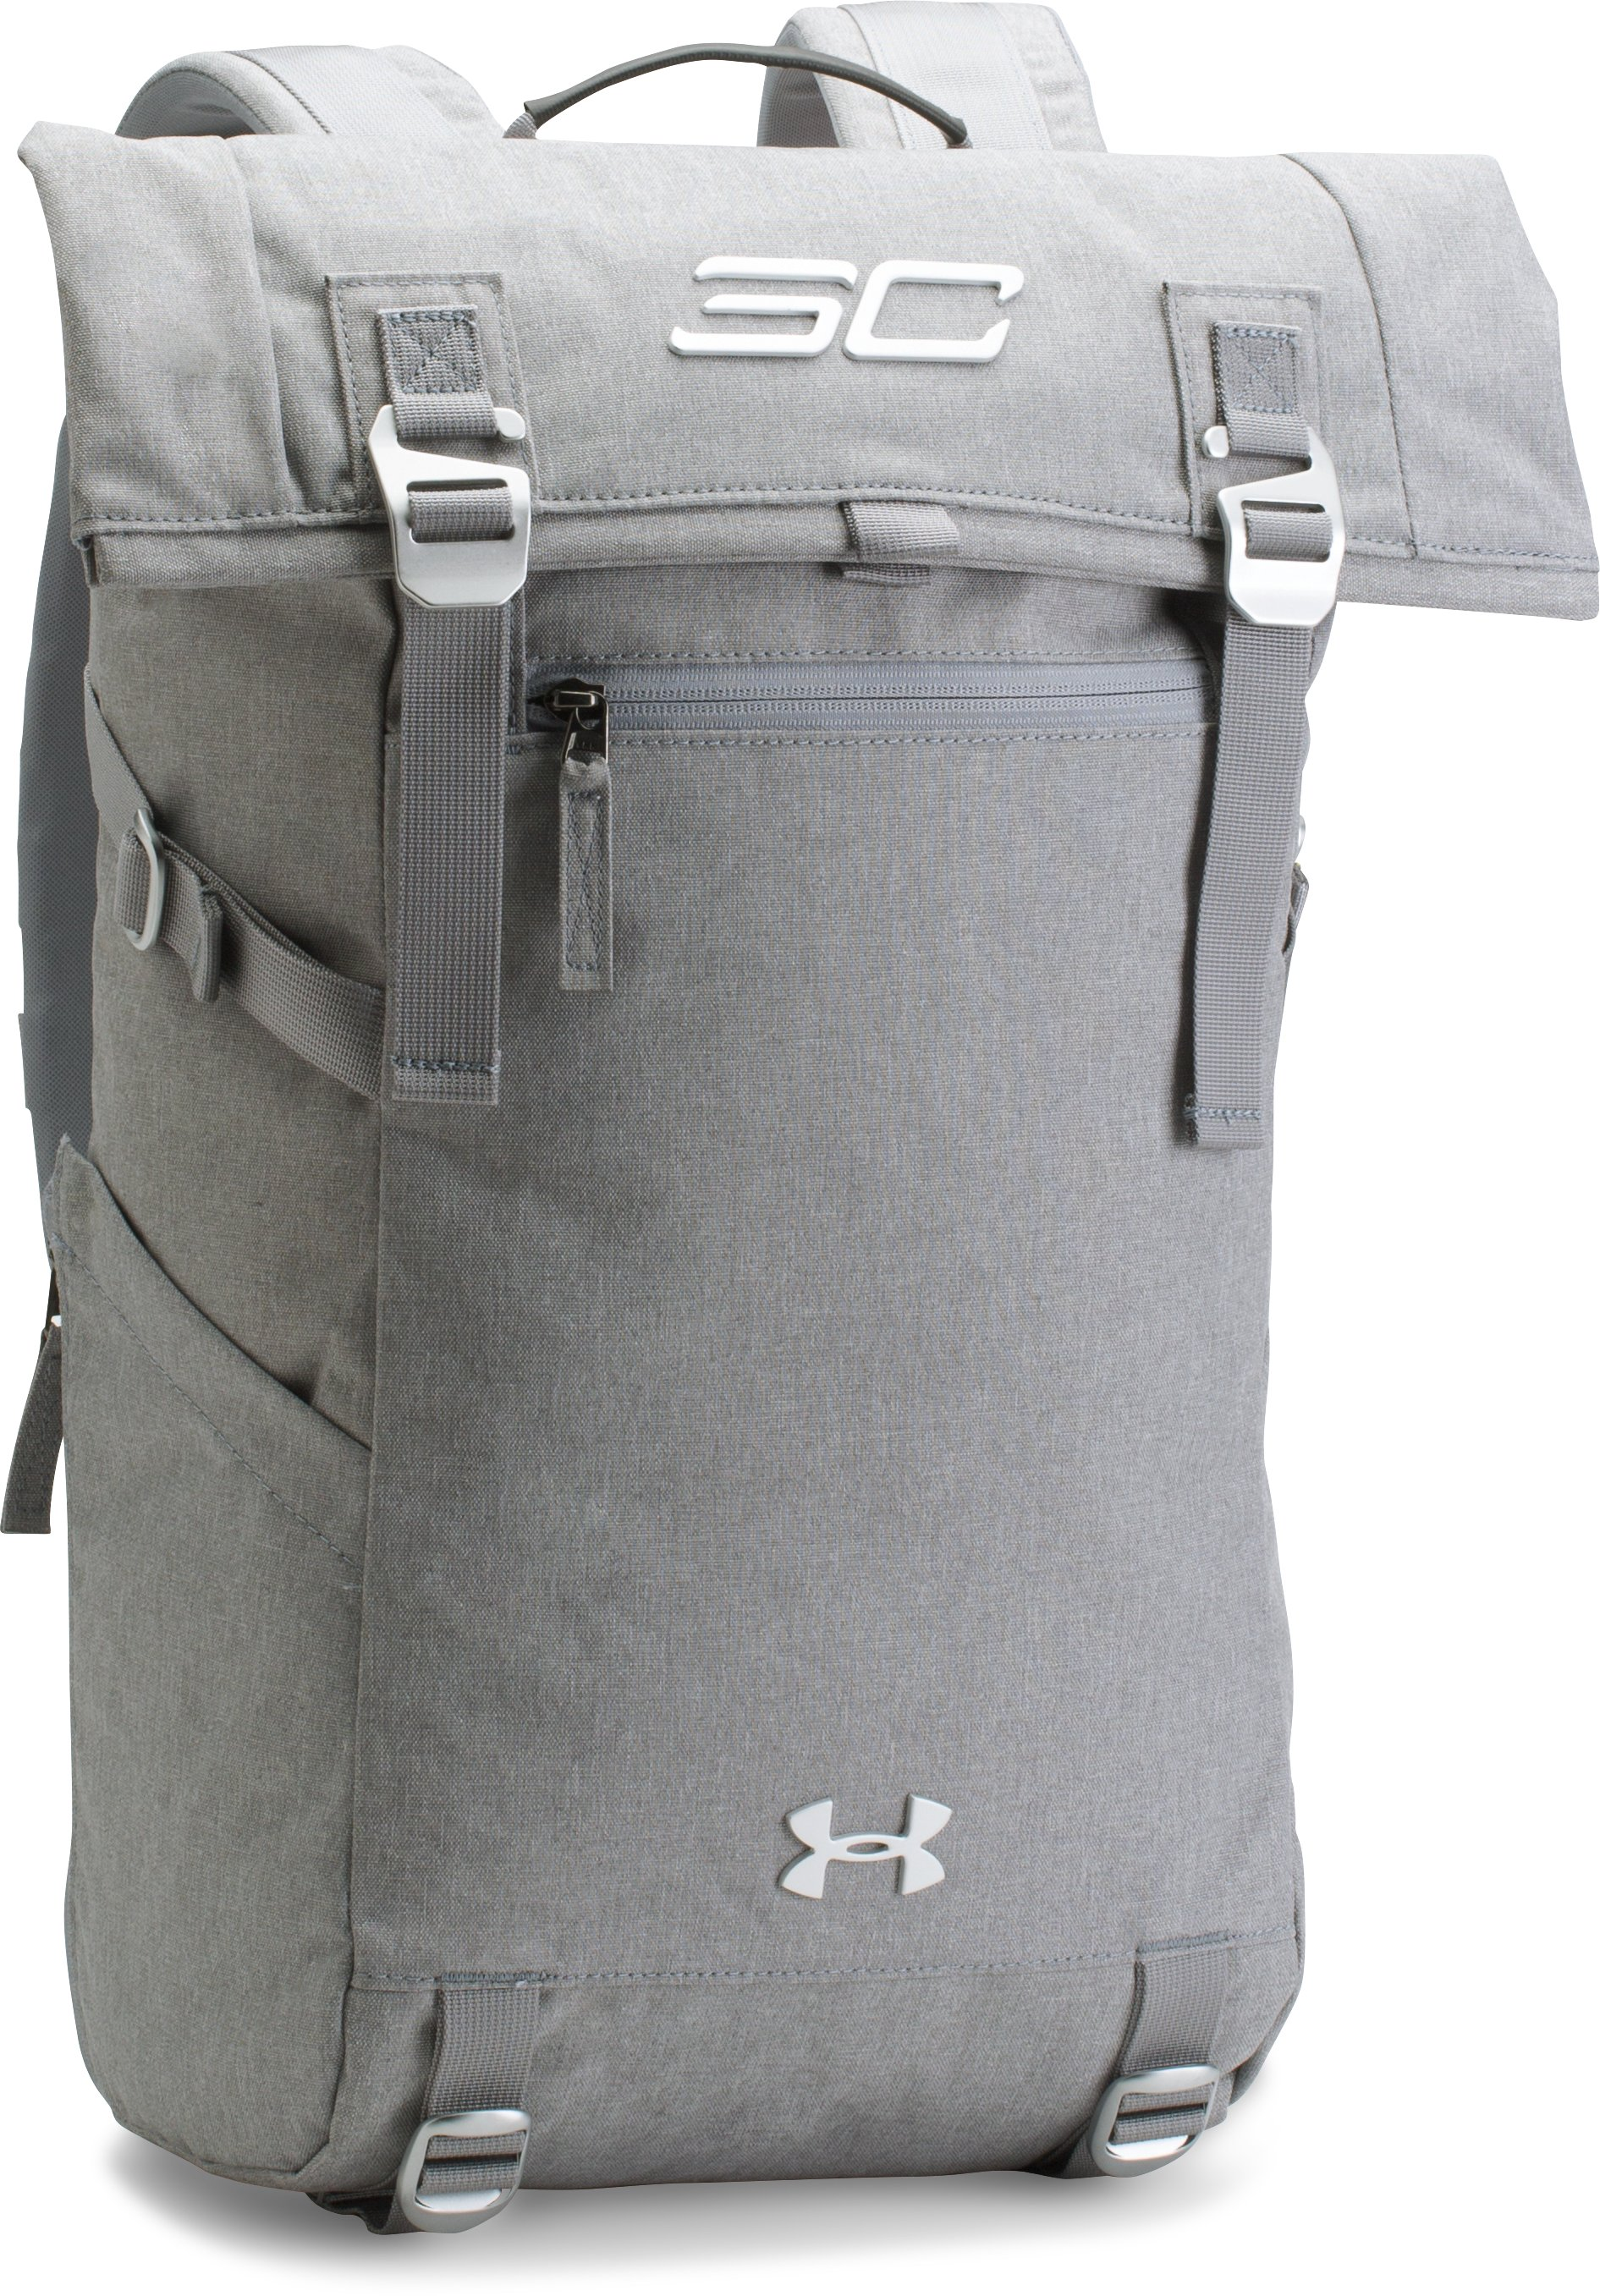 SC30 Signature Rolltop Backpack, GRAY AREA MEDIUM HEATHER